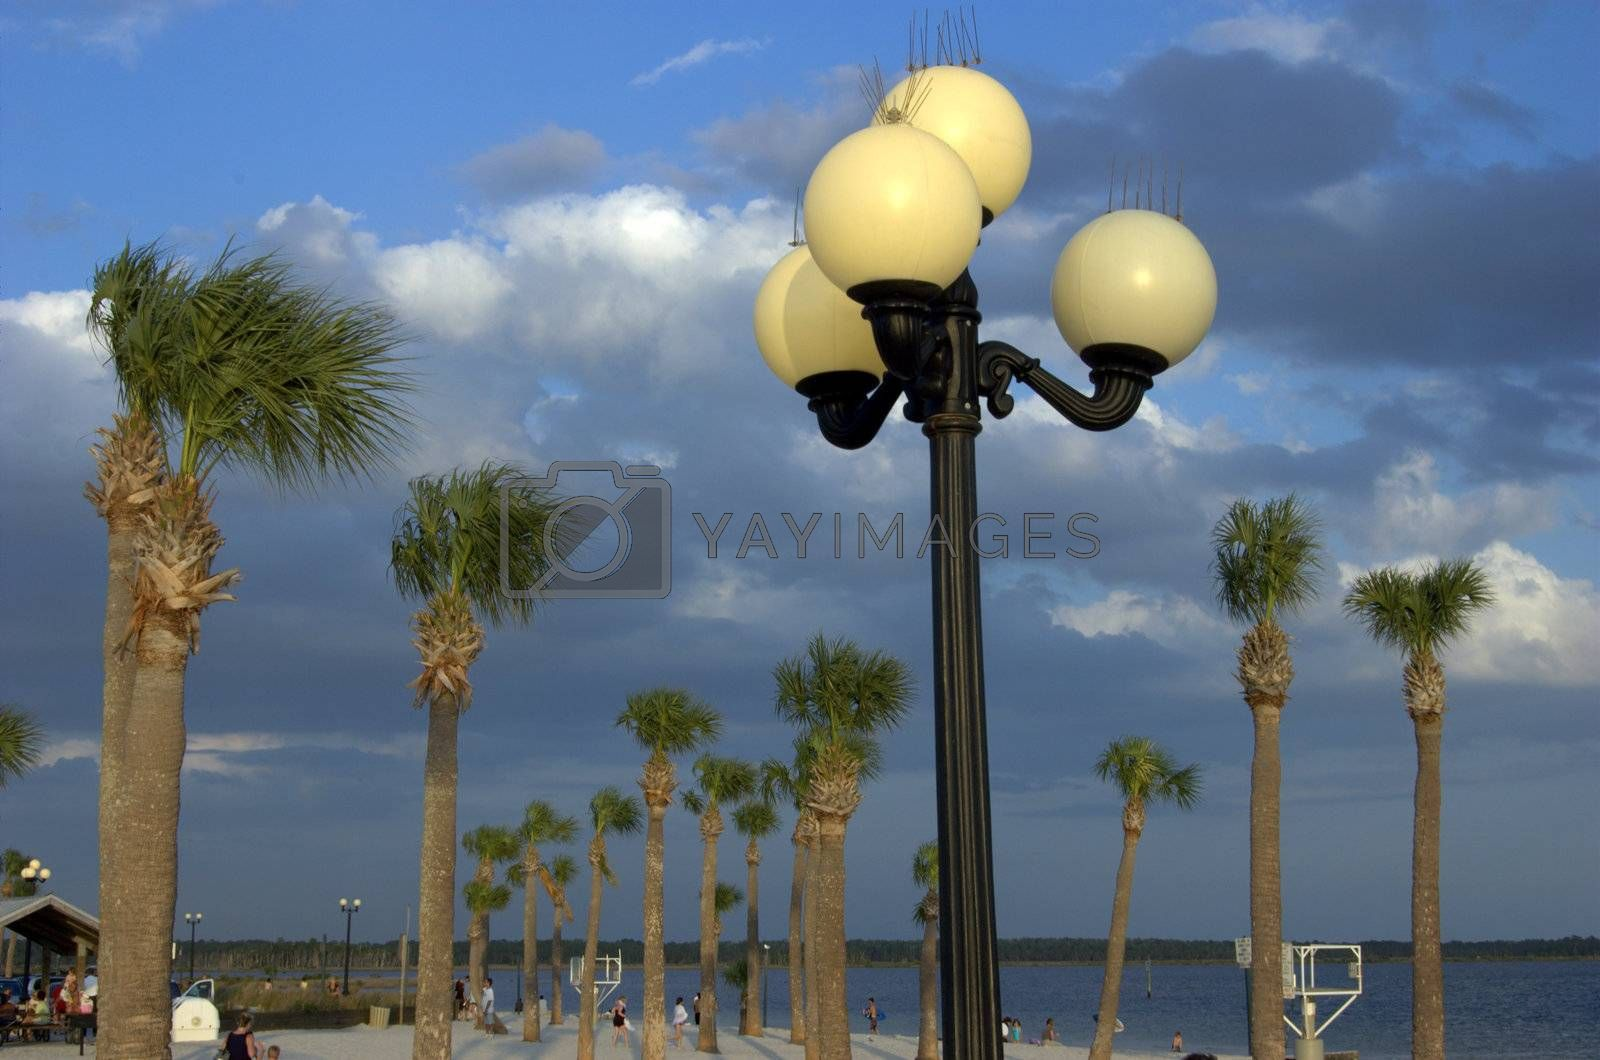 lights shown with palm trees